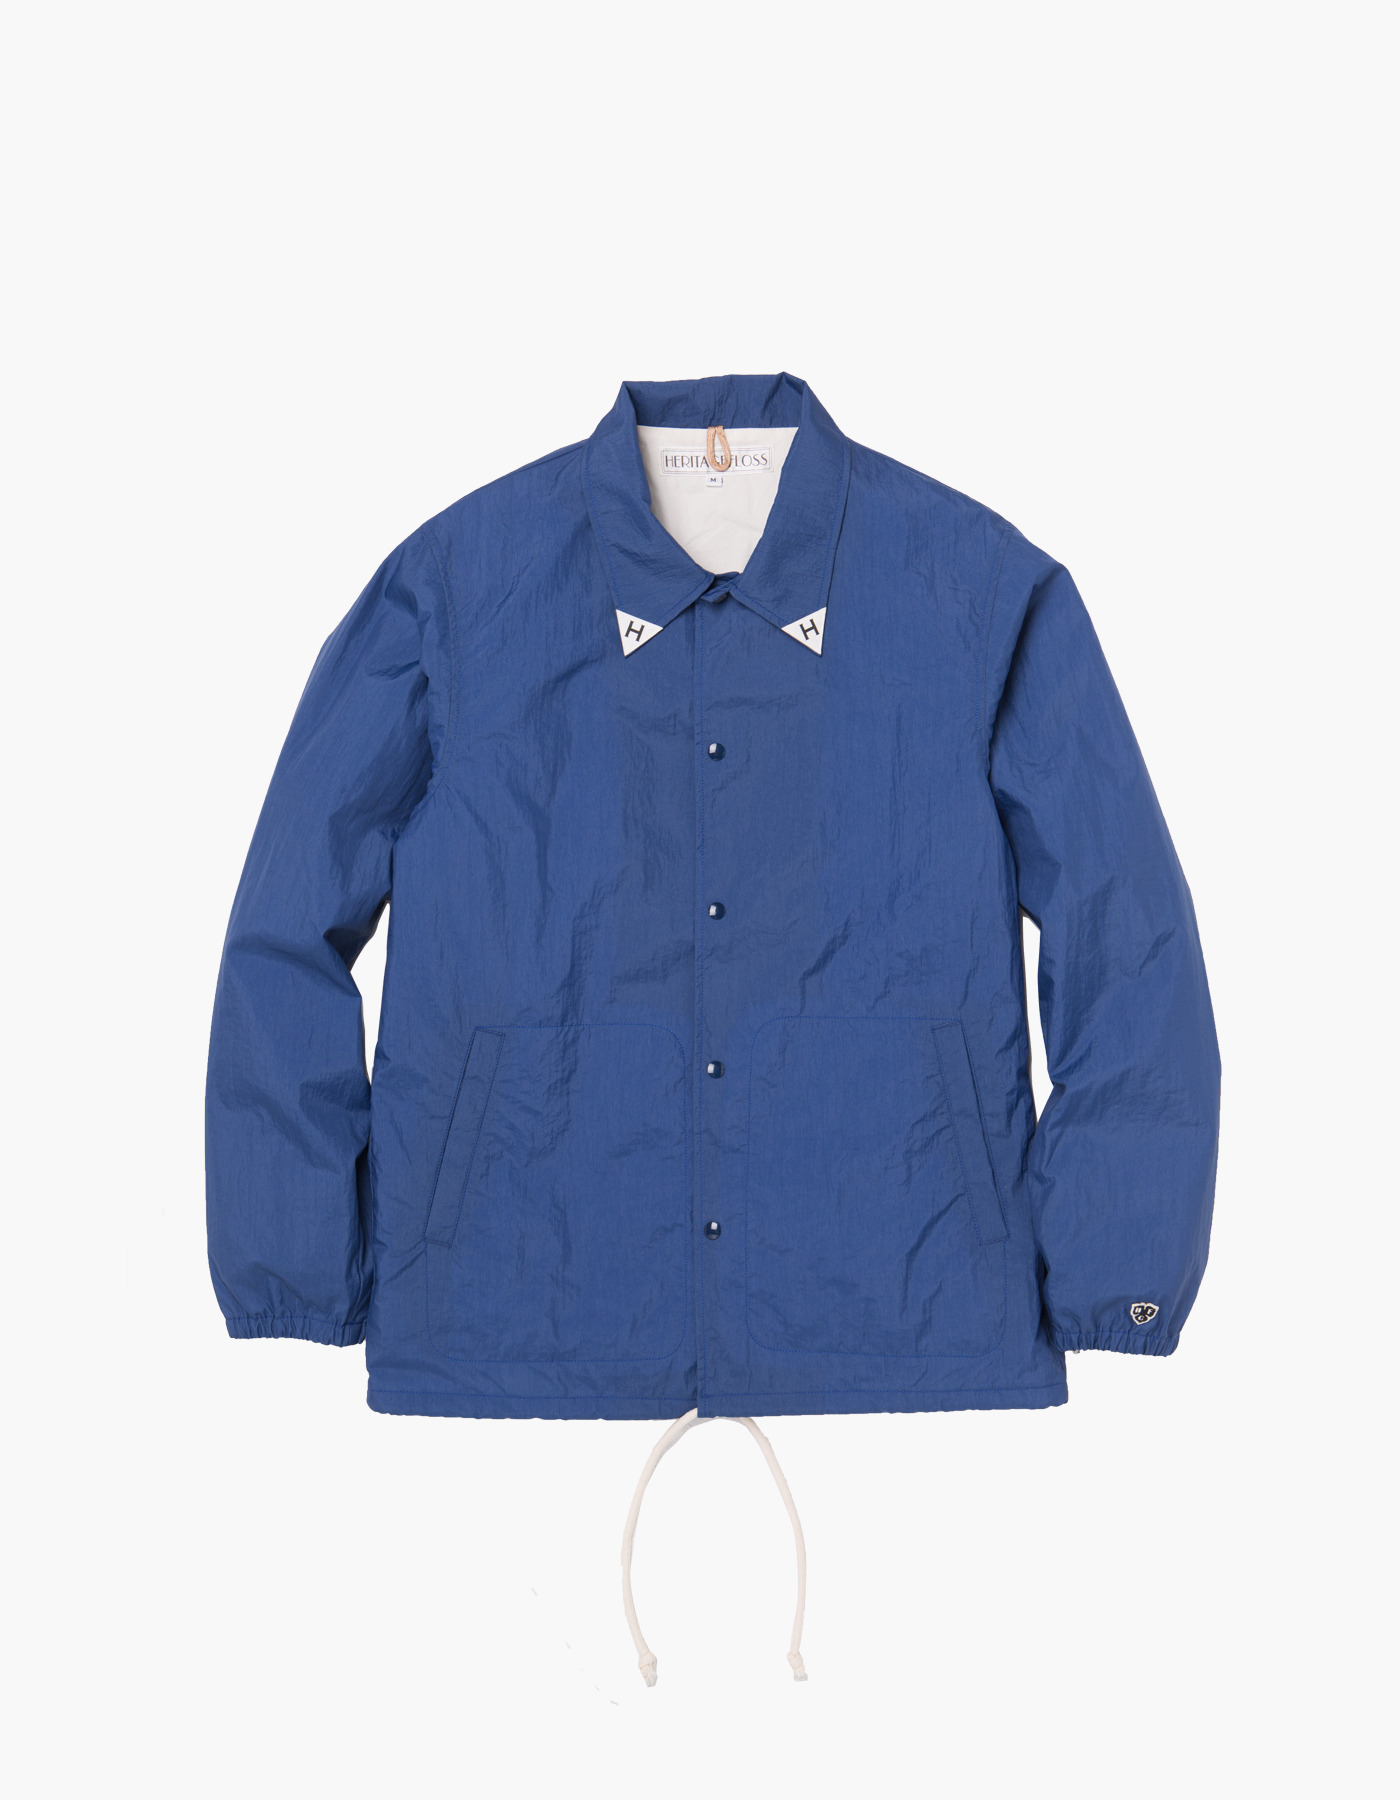 YACHT CLUB COACH JACKET / BLUE